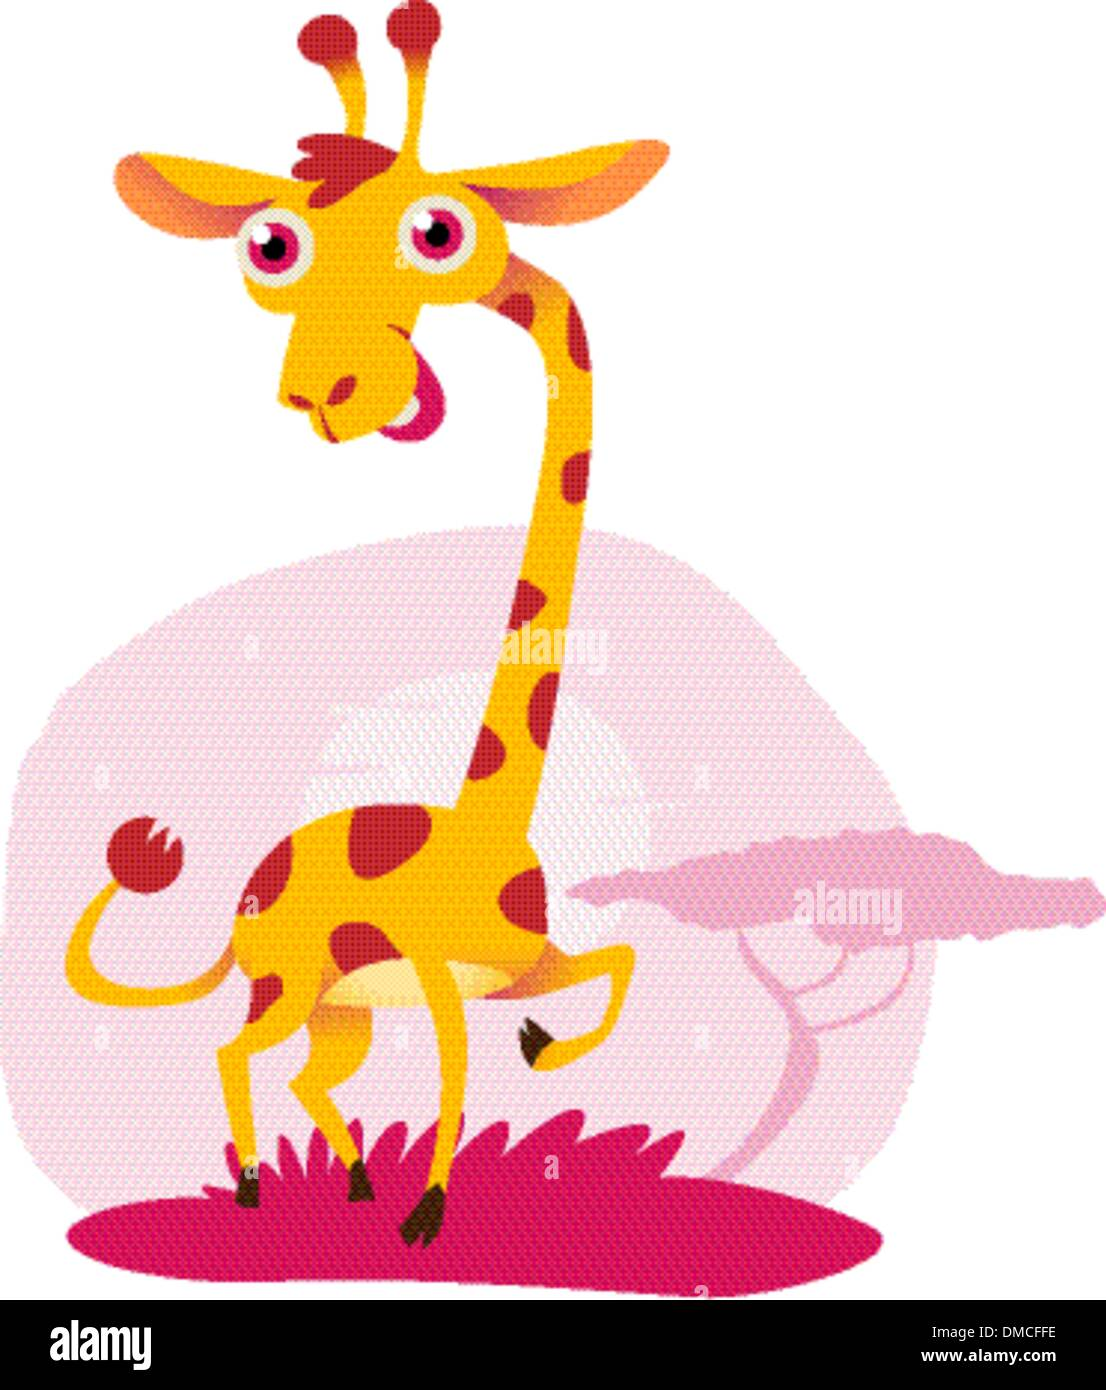 An illustration of a cute, goofy-looking giraffe - Stock Image